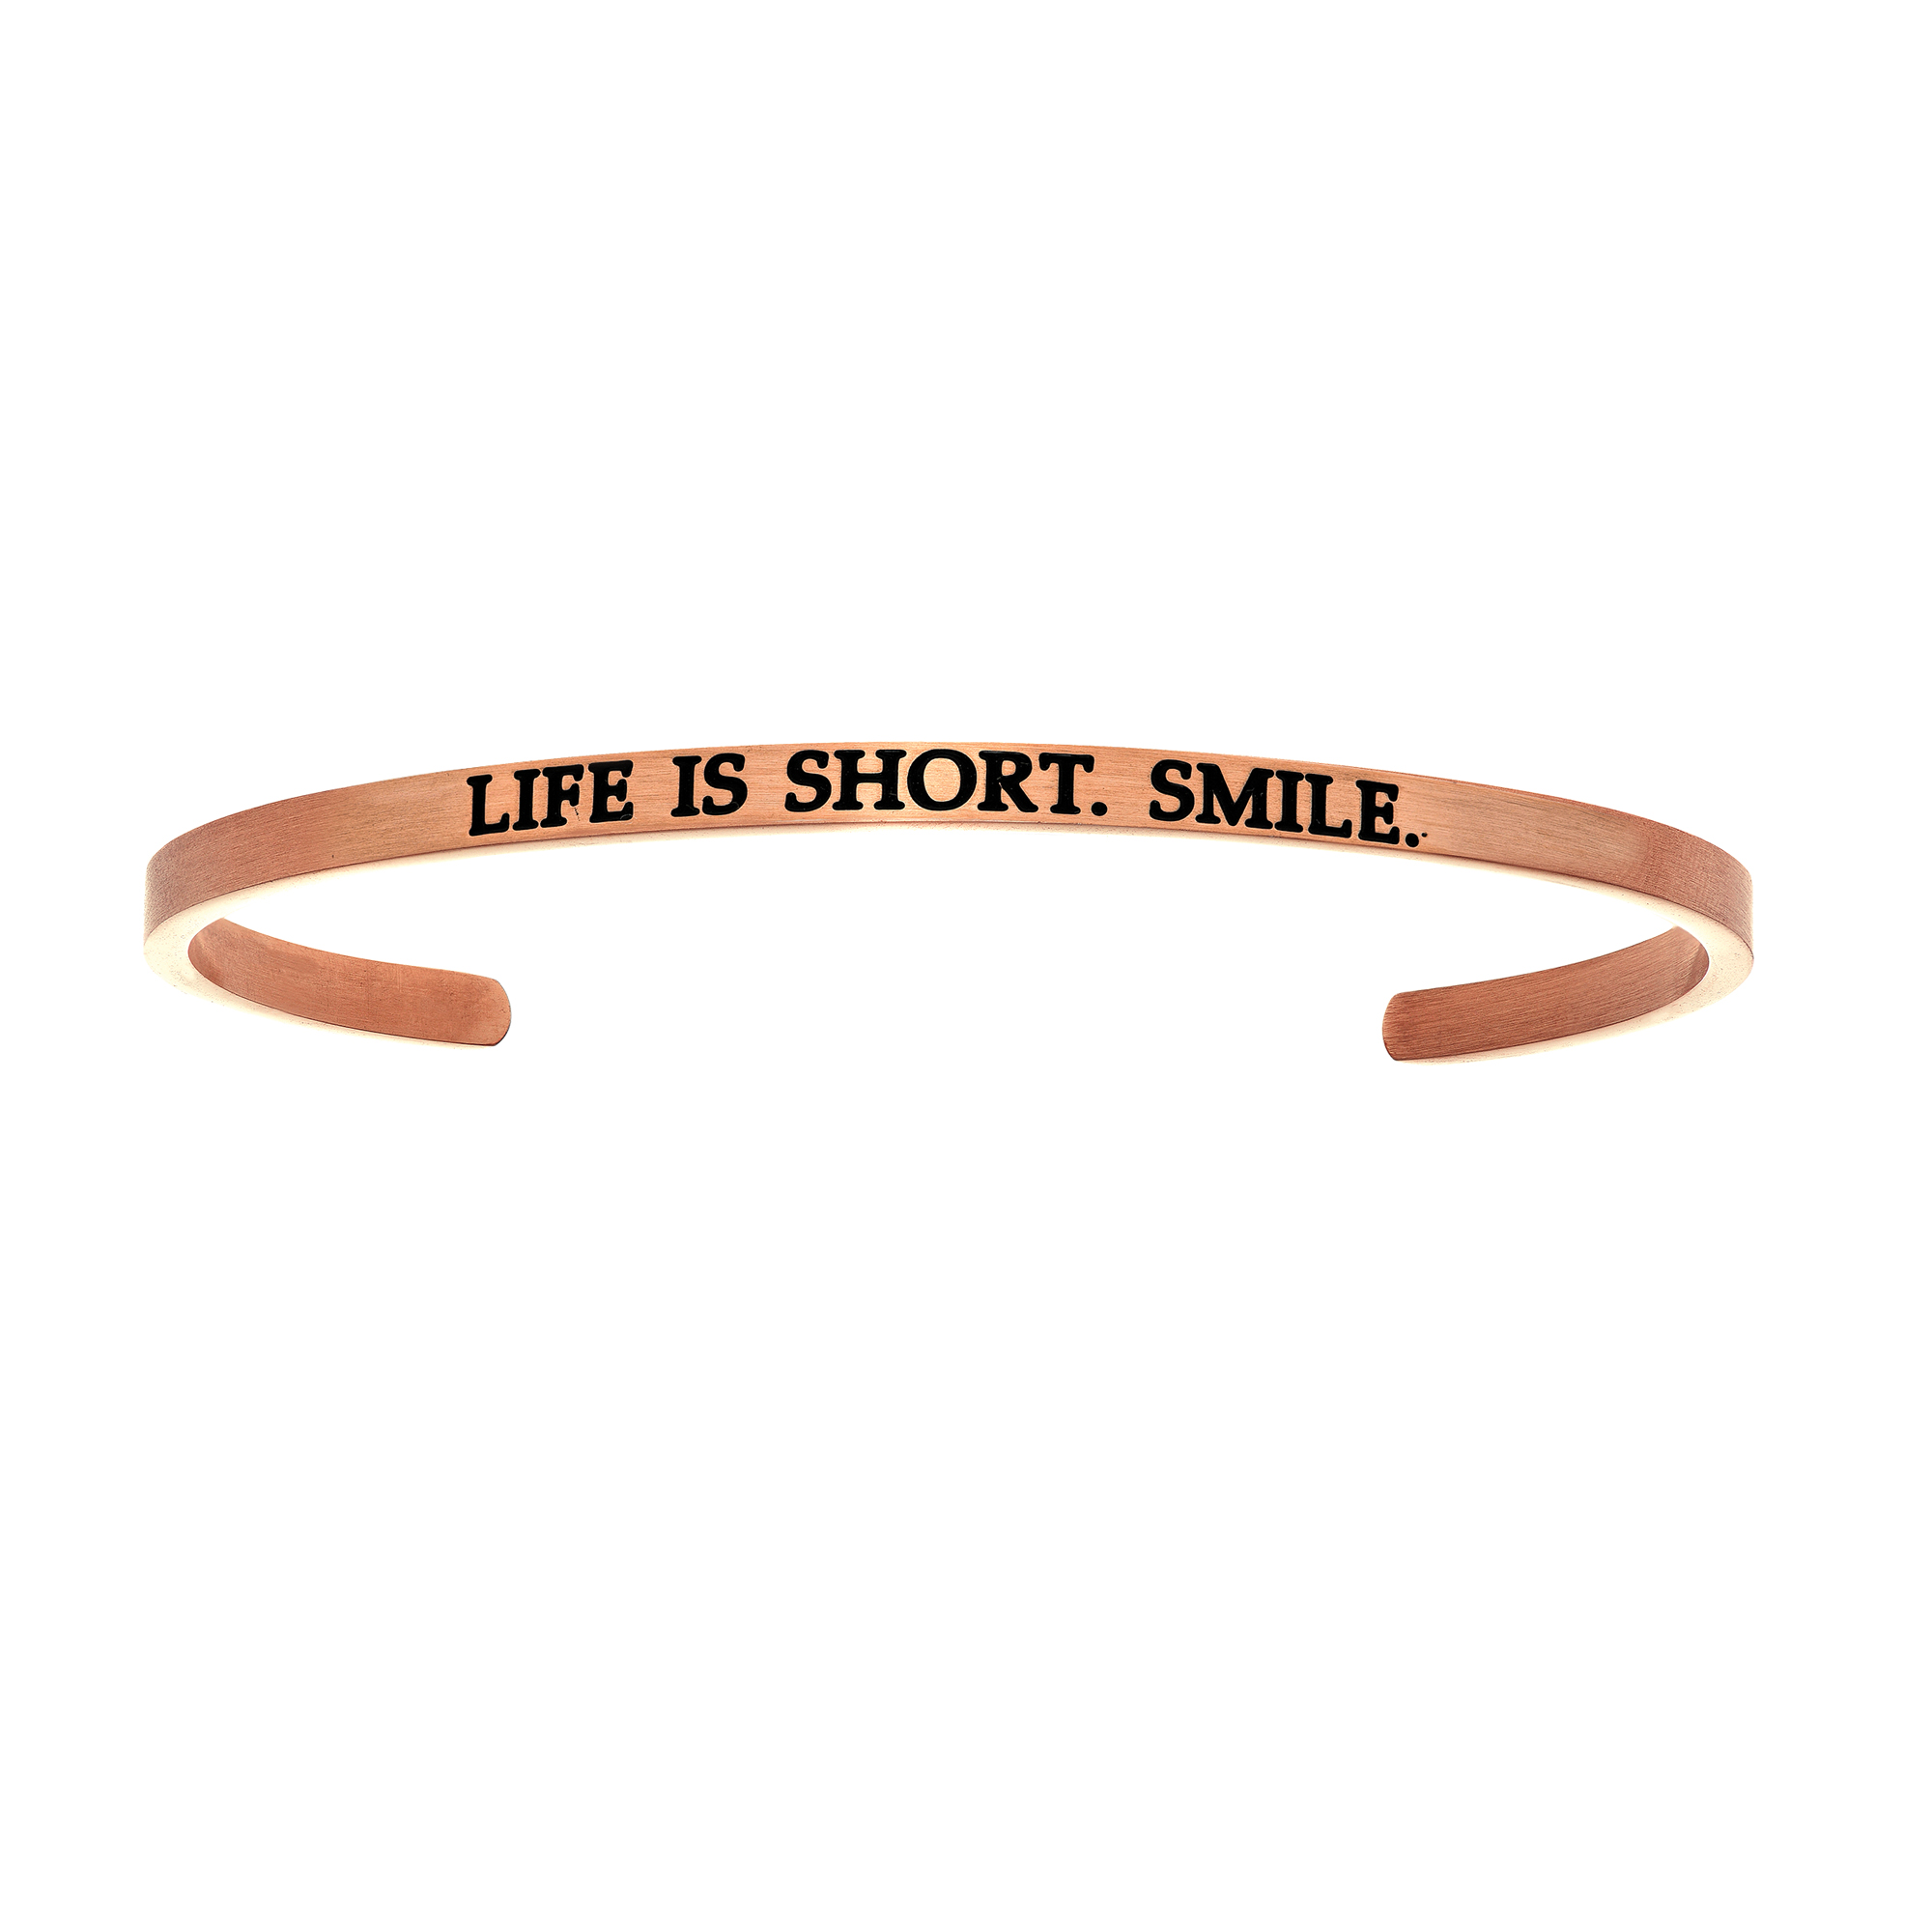 Intuitions Stainless Steel LIFE IS SHORT SMILE Diamond Accent Cuff Bangle Bracelet, 7″